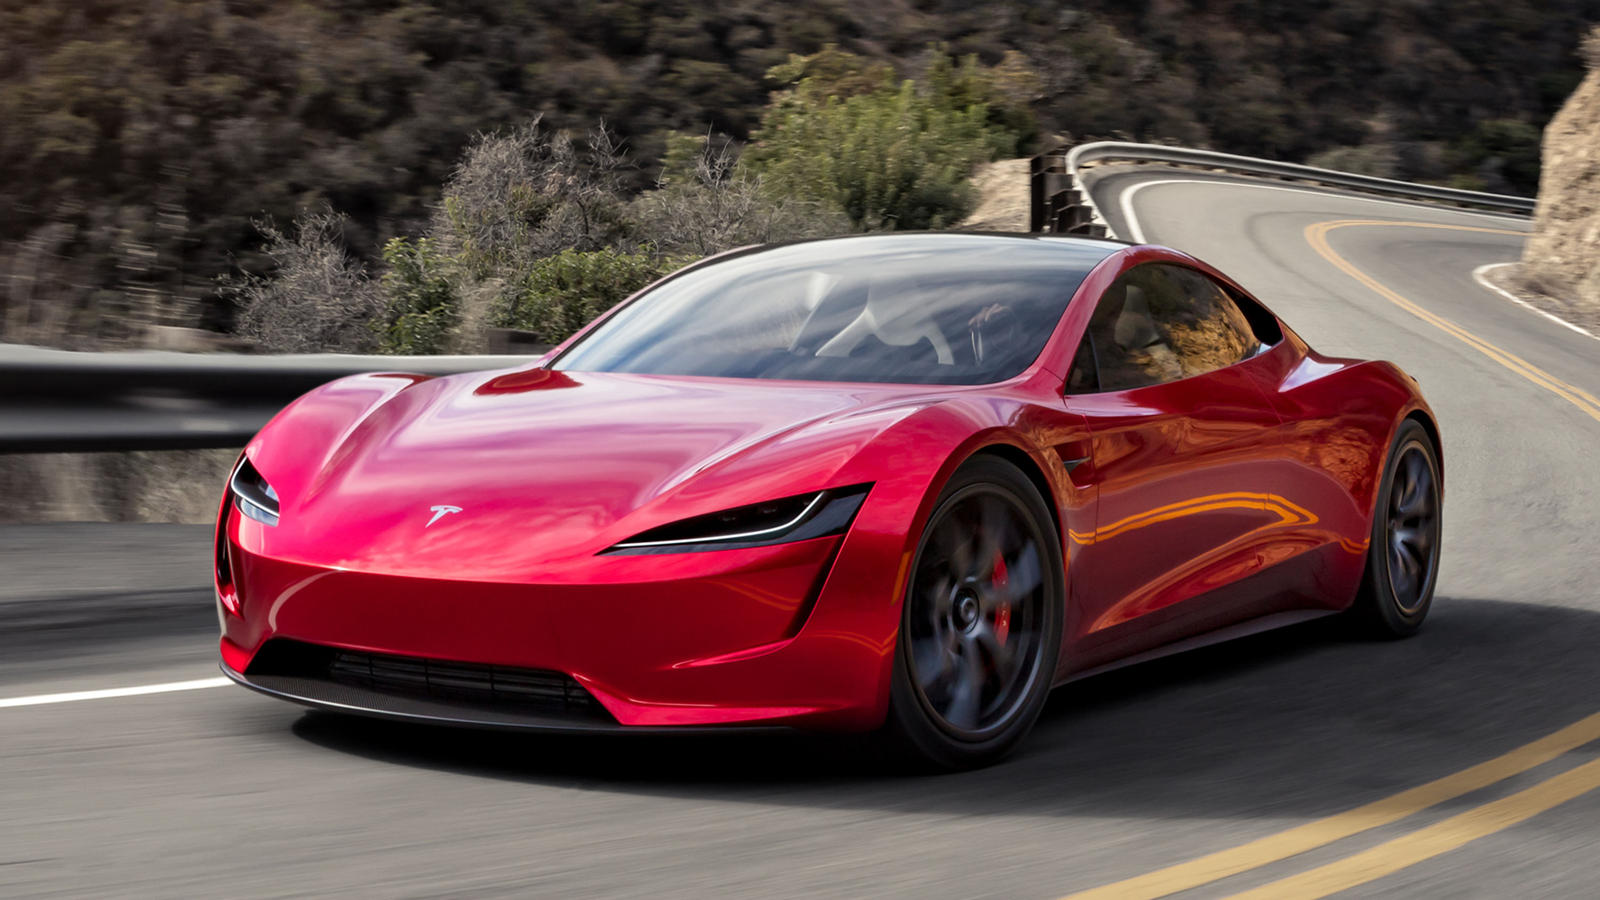 2020 Tesla Roadster: Review, Trims, Specs, Price, New